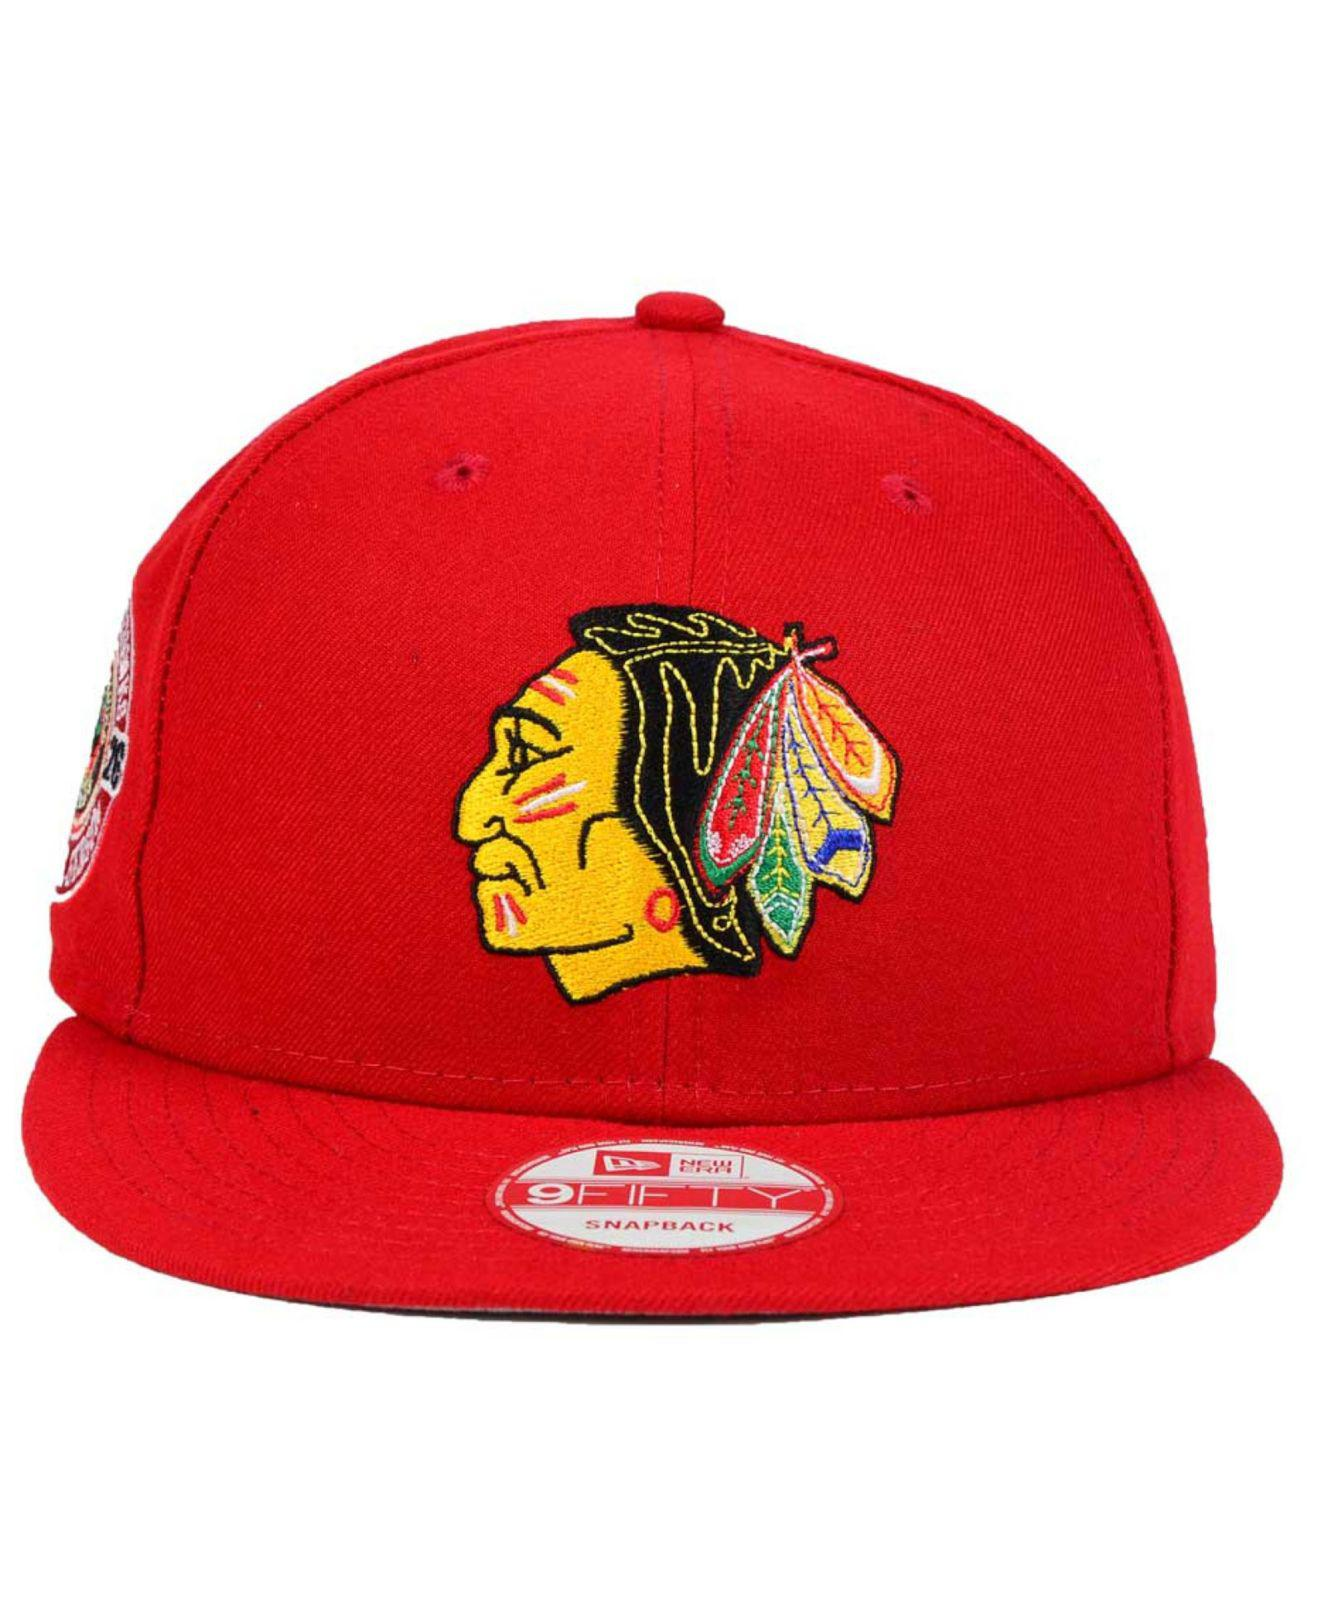 Lyst - KTZ Chicago Blackhawks All Day 9fifty Snapback Cap in Red for Men 05a5fec5086c